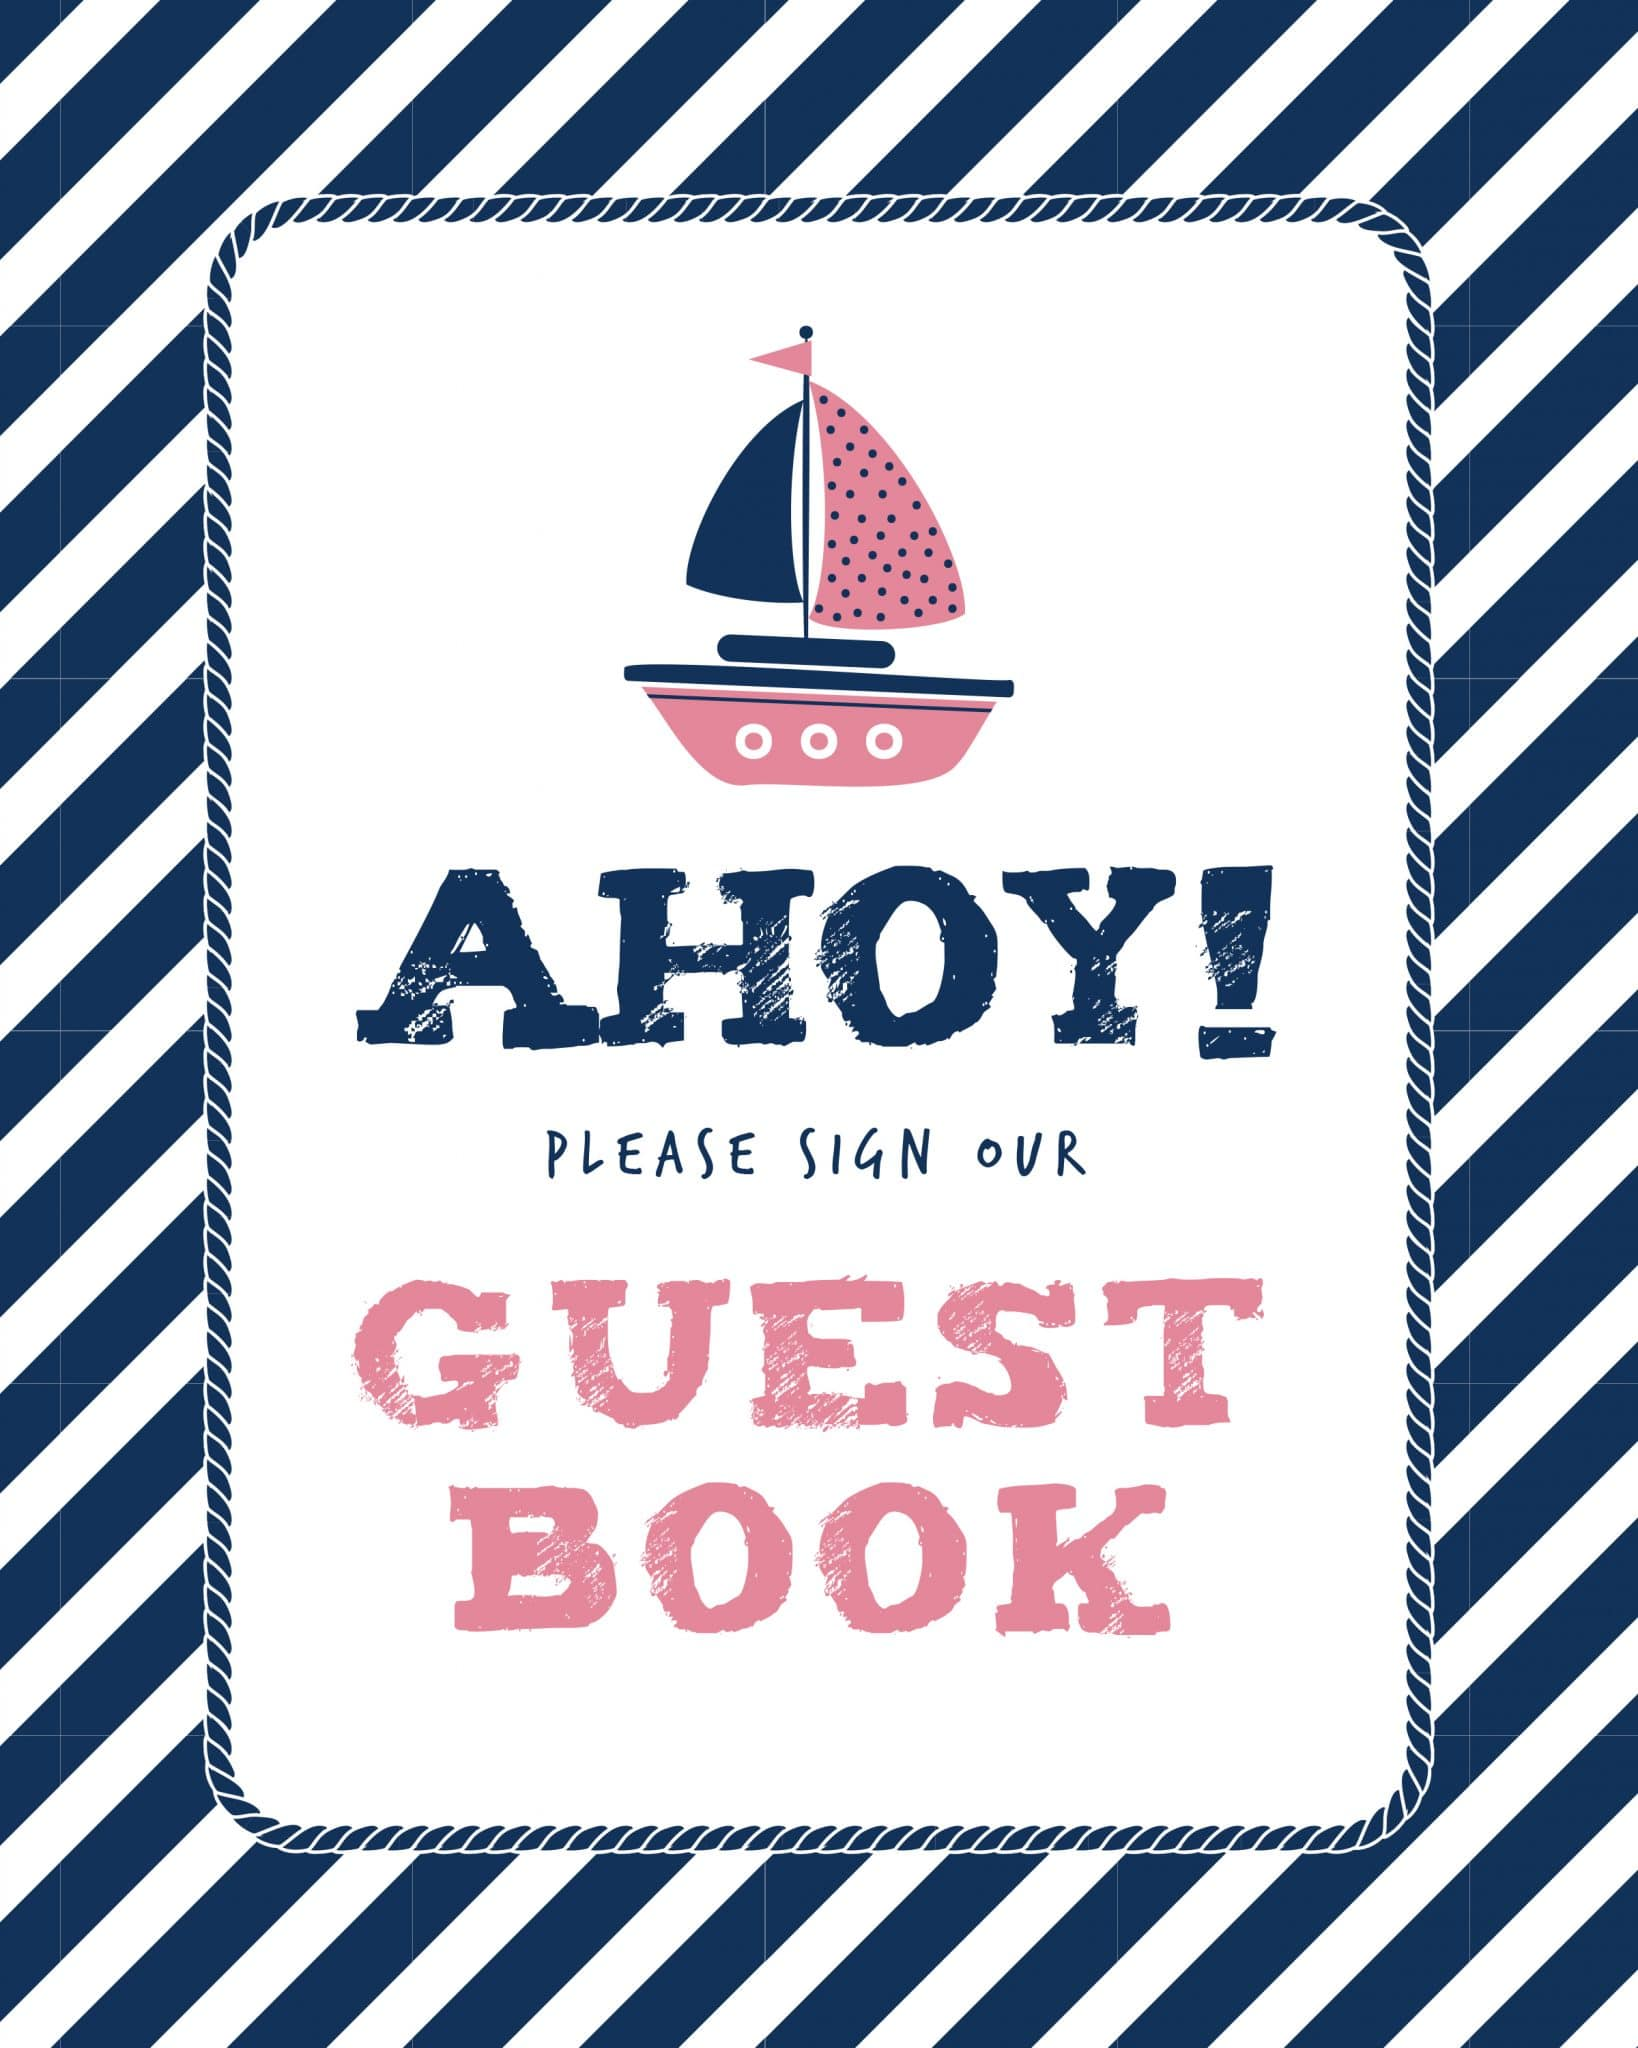 Please sign our guestbook nautical theme